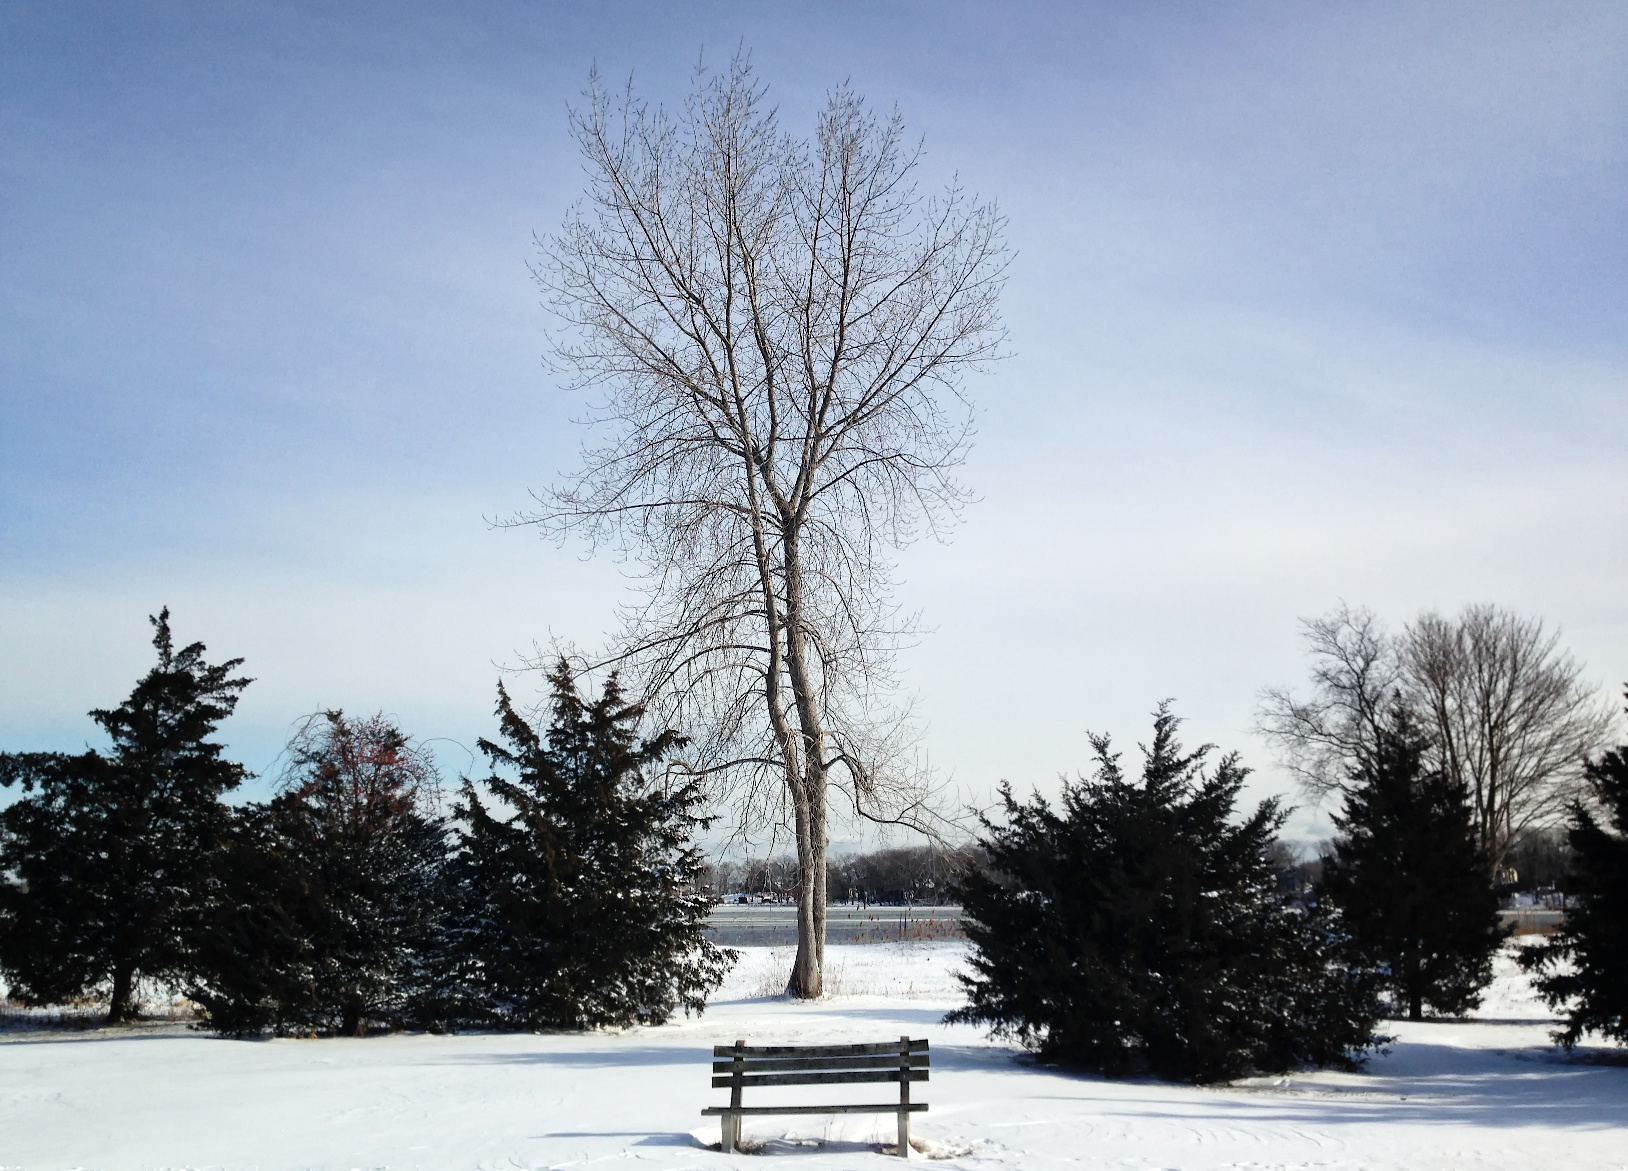 Clinton Beach bench in winter.